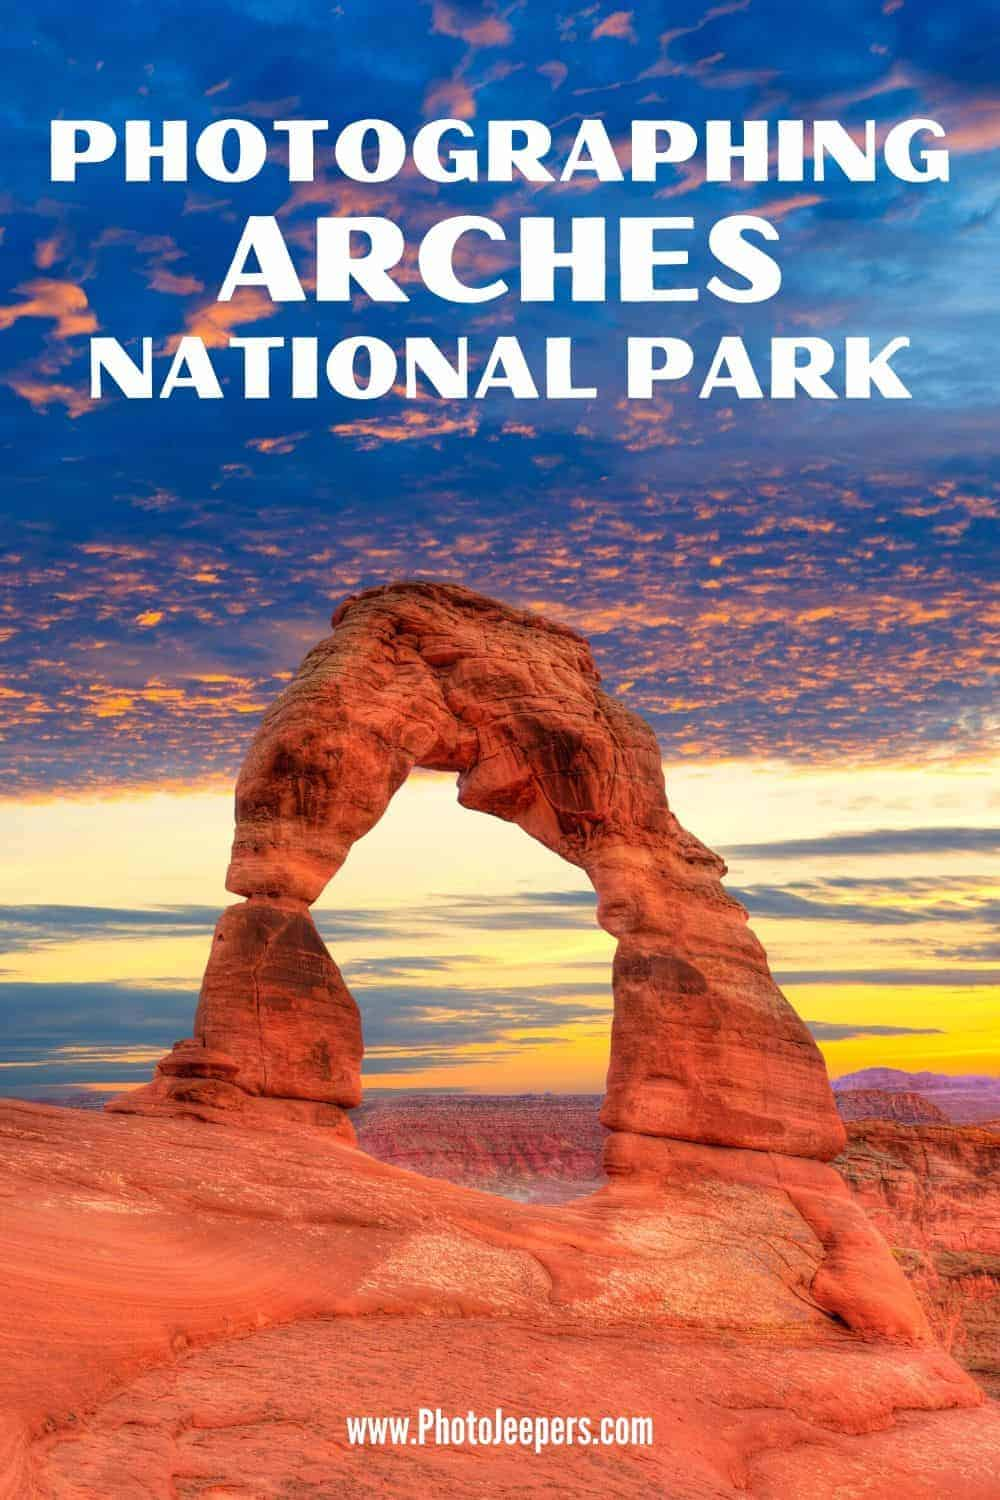 Expert's guide to photographing Arches National Park: Arches National Park tips | Best places to see arches in the park | Best sunrise and sunset spots in Arches | Night photography spots in Arches | Tips for planning a trip to Arches National Park | Photography basics and techniques at Arches #nationalparks #landscapephotography #archesnationalpark #utah #photojeepers